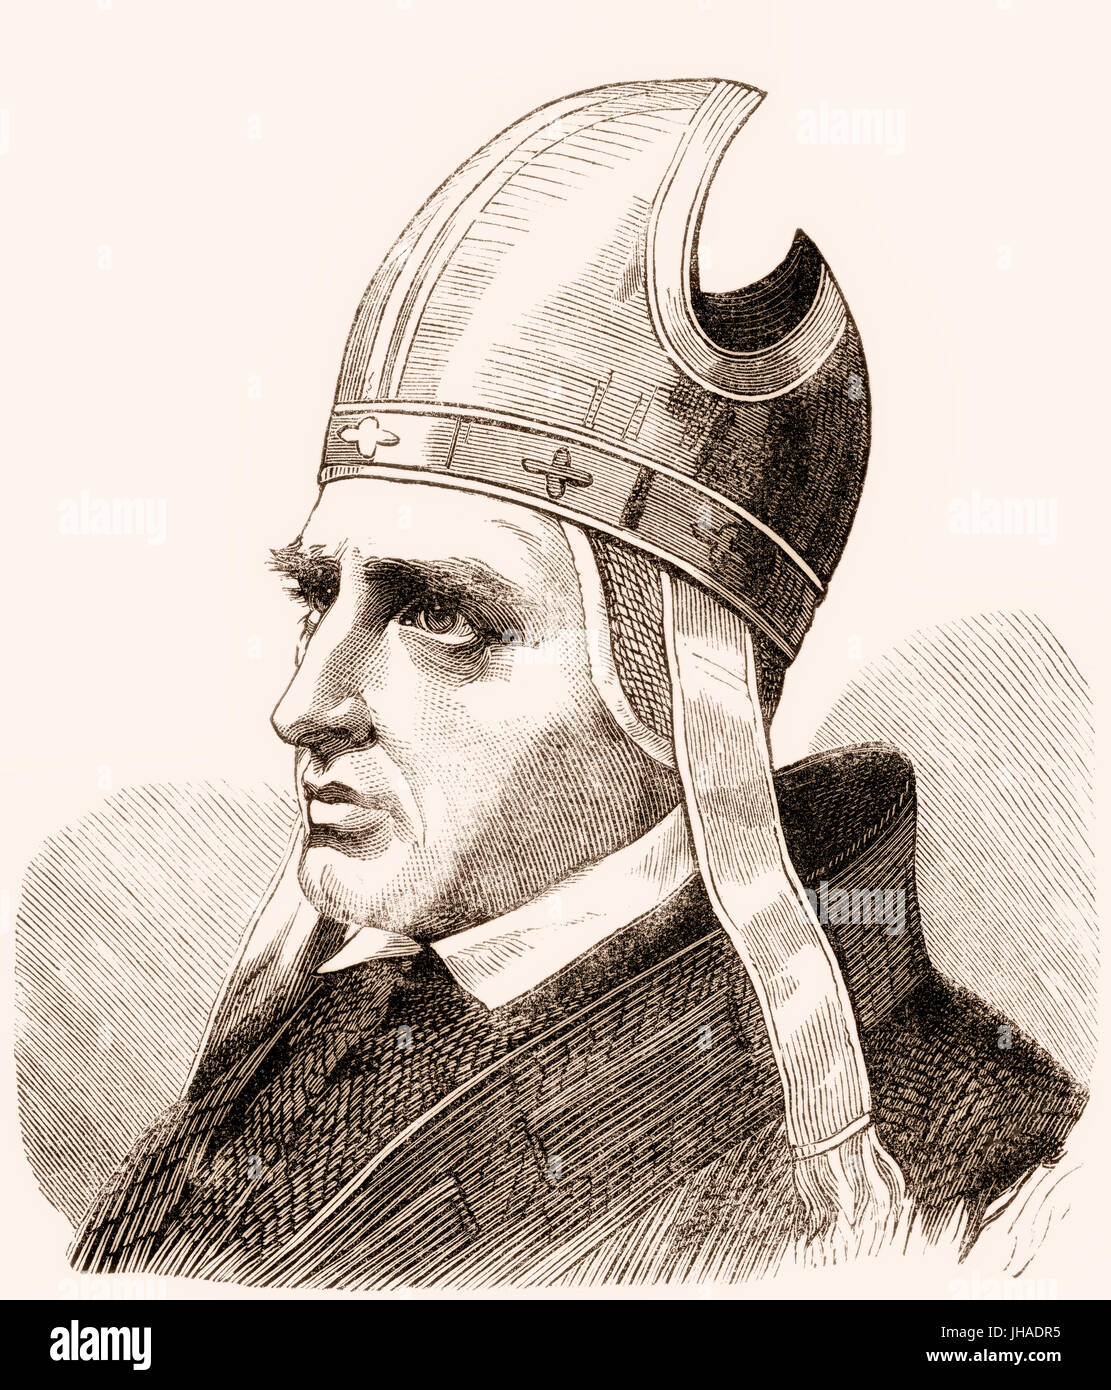 Pope Sylvester II or Silvester II, c. 946 – 1003, was Pope from 2 April 999 to his death in 1003 - Stock Image